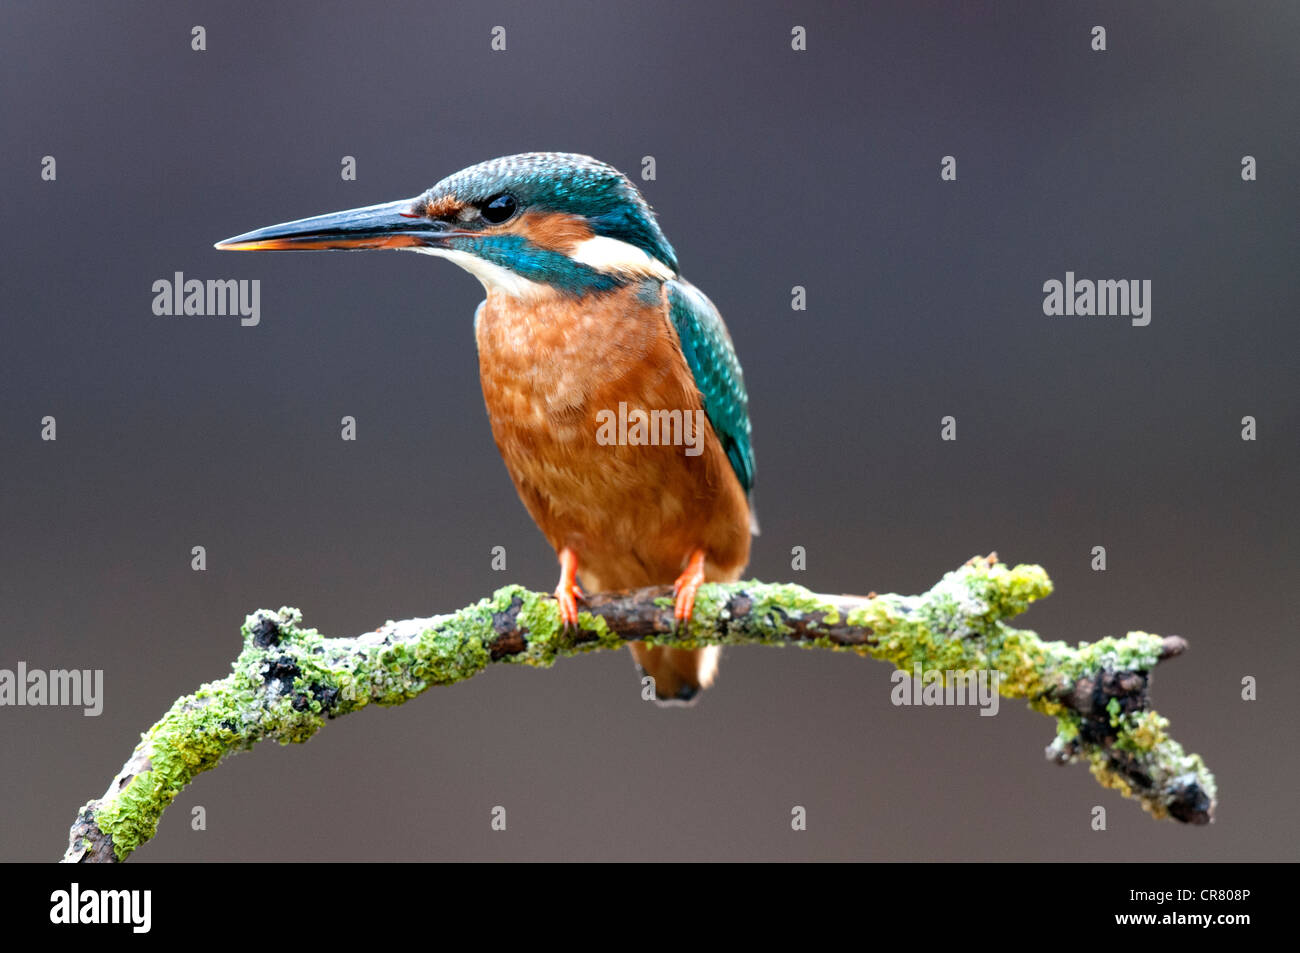 female kingfisher sitting on a twig looking left - Stock Image